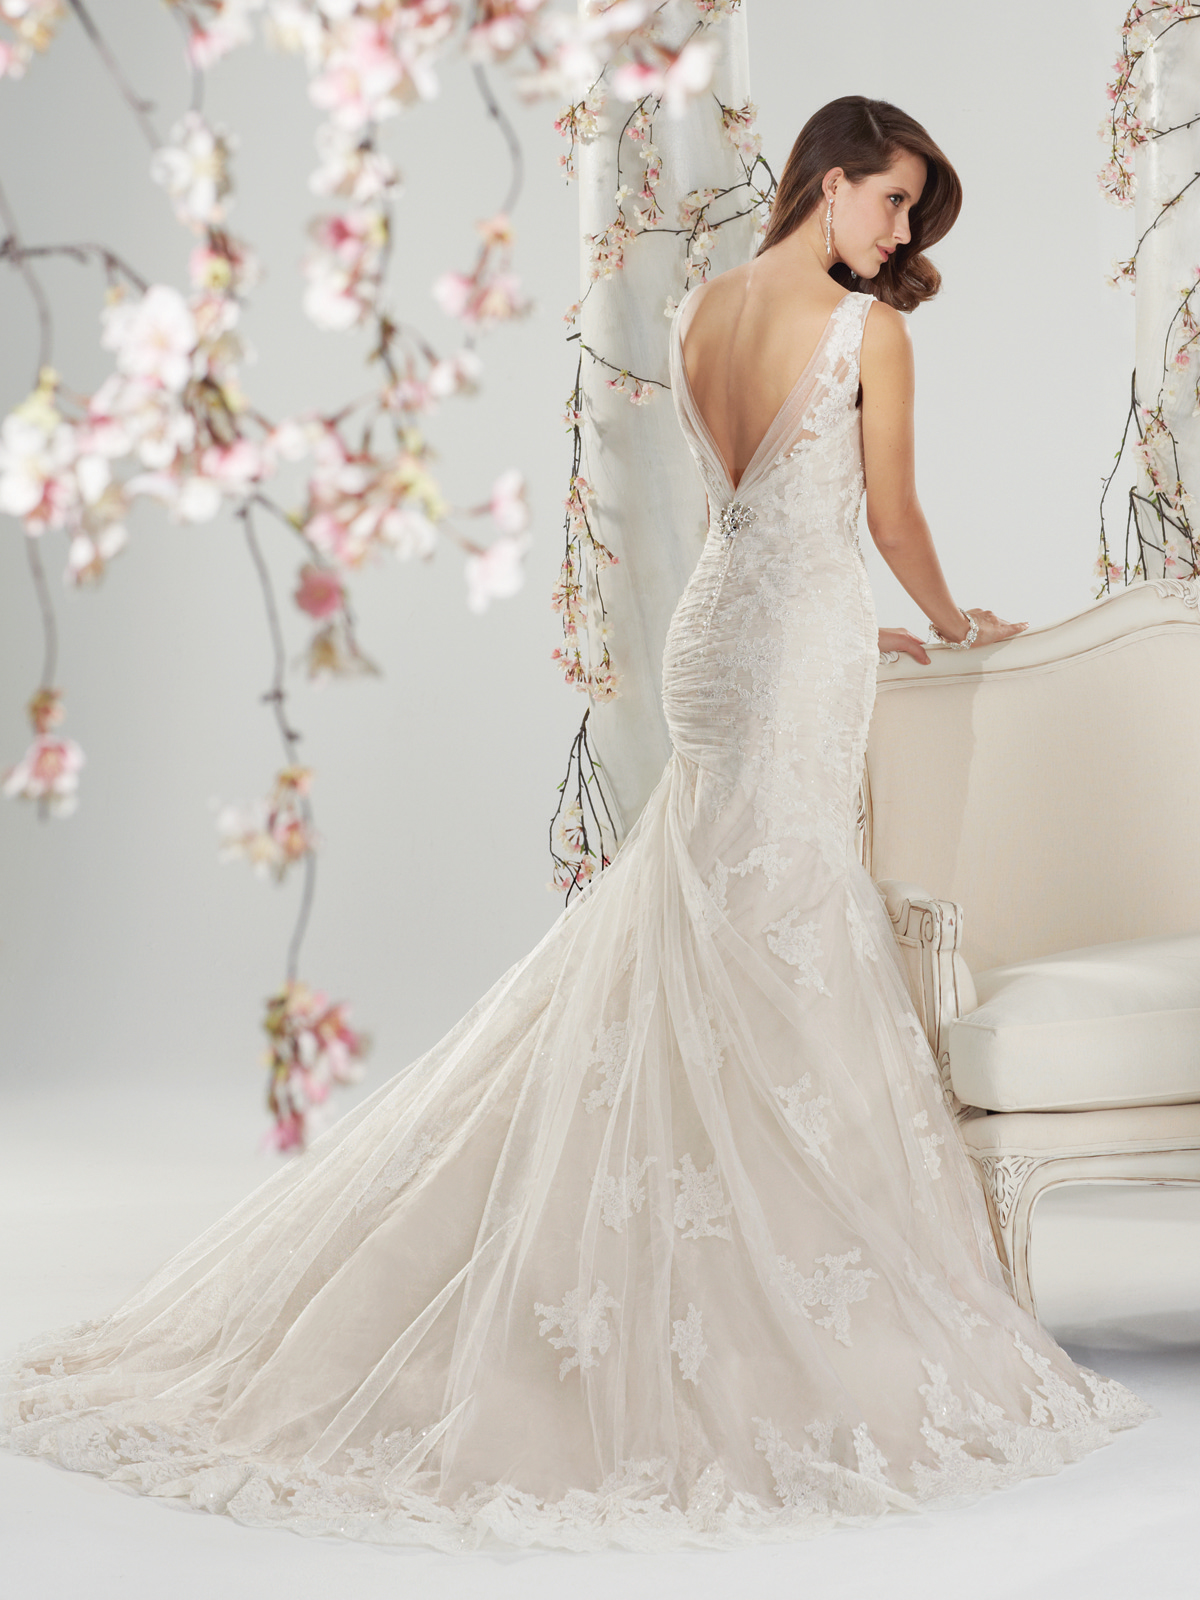 Sophia Tolli - Sunshine Coast Wedding Dresses